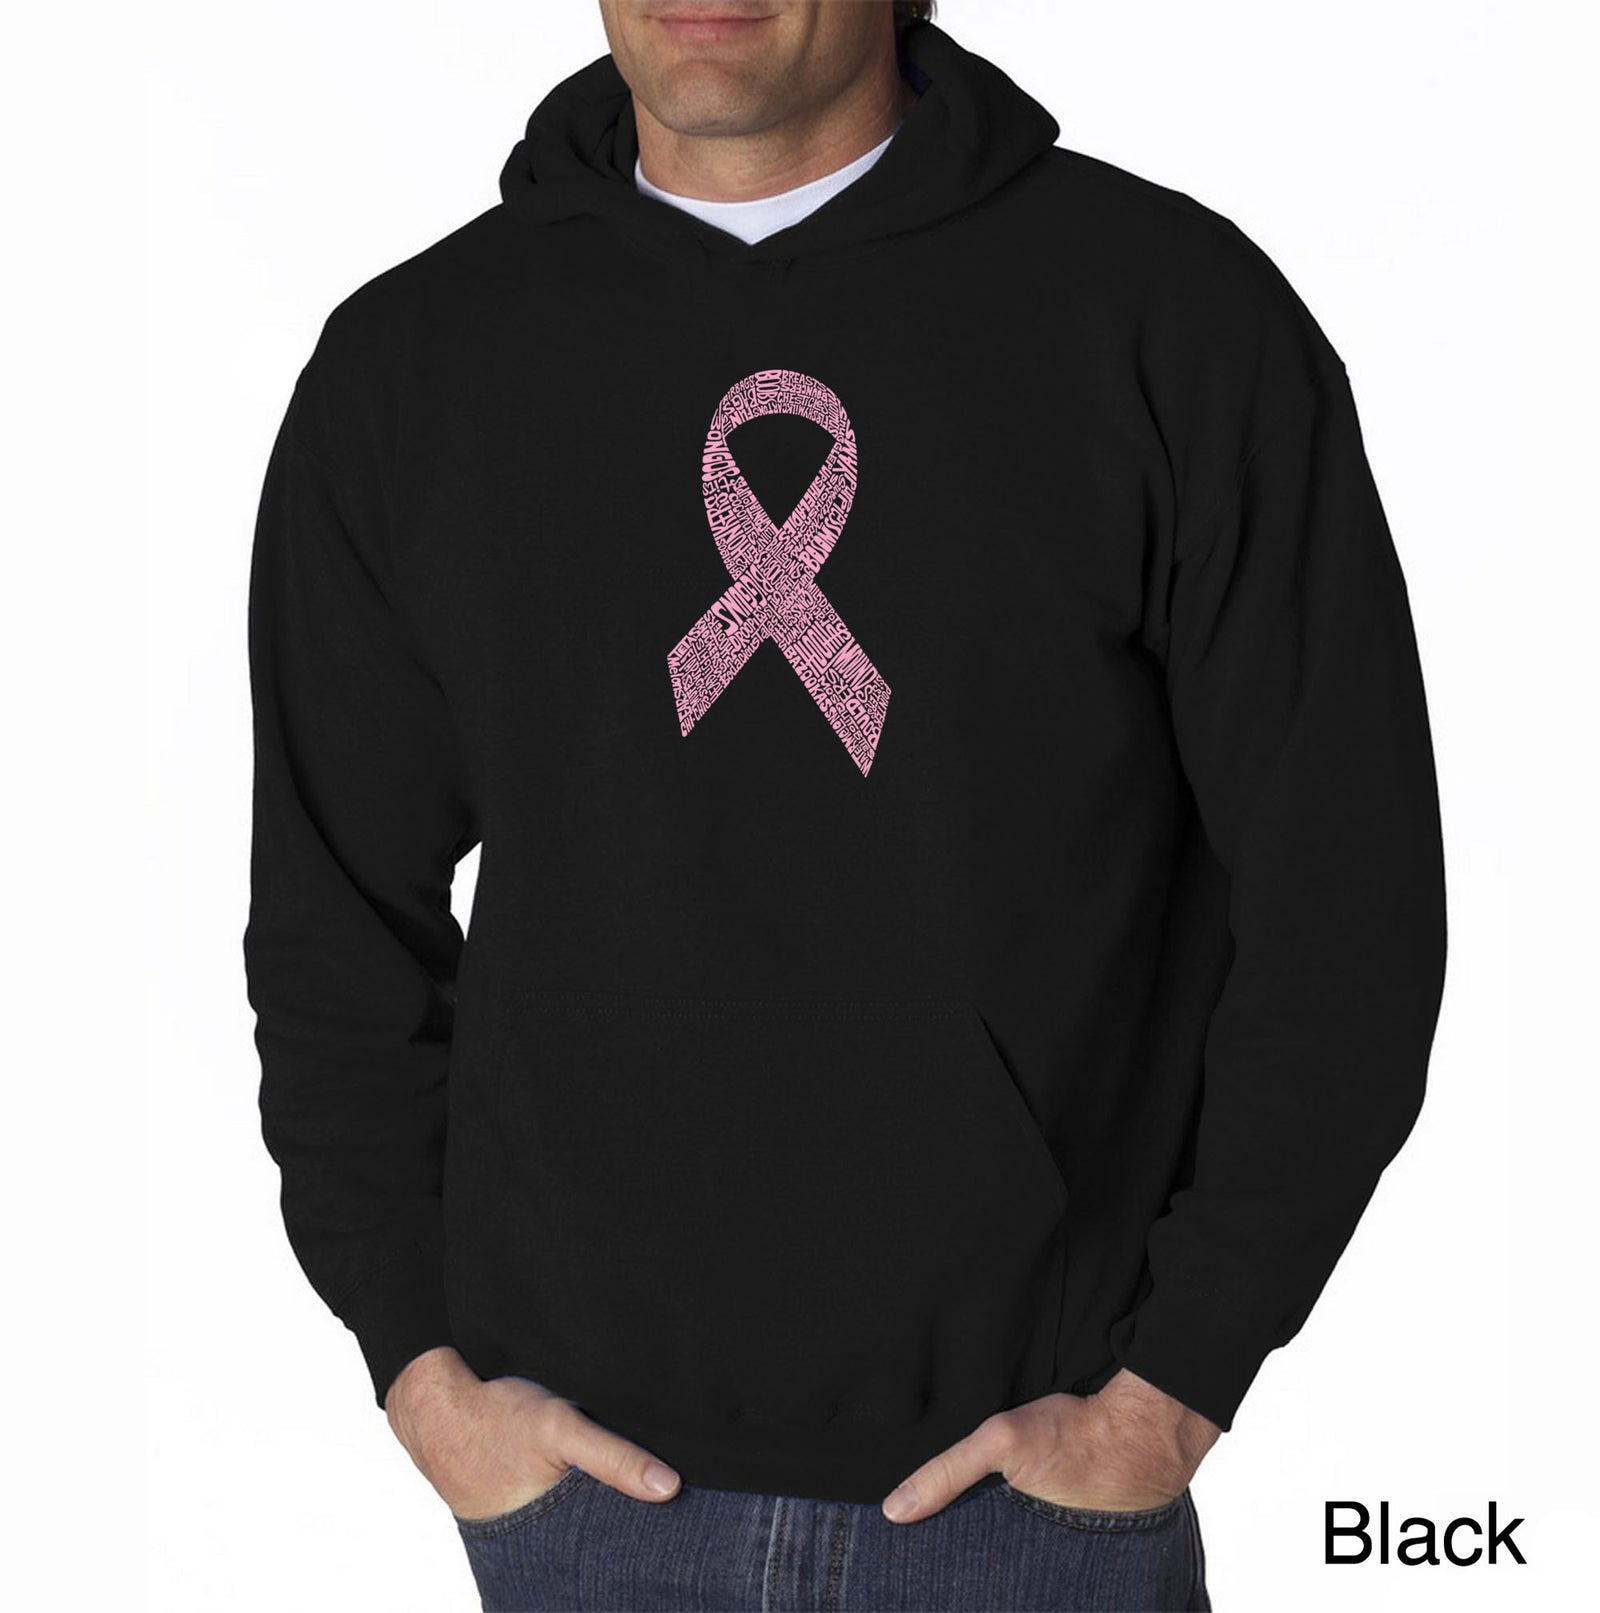 Men's Hooded Sweatshirt - CREATED OUT OF 50 SLANG TERMS FOR BREASTS